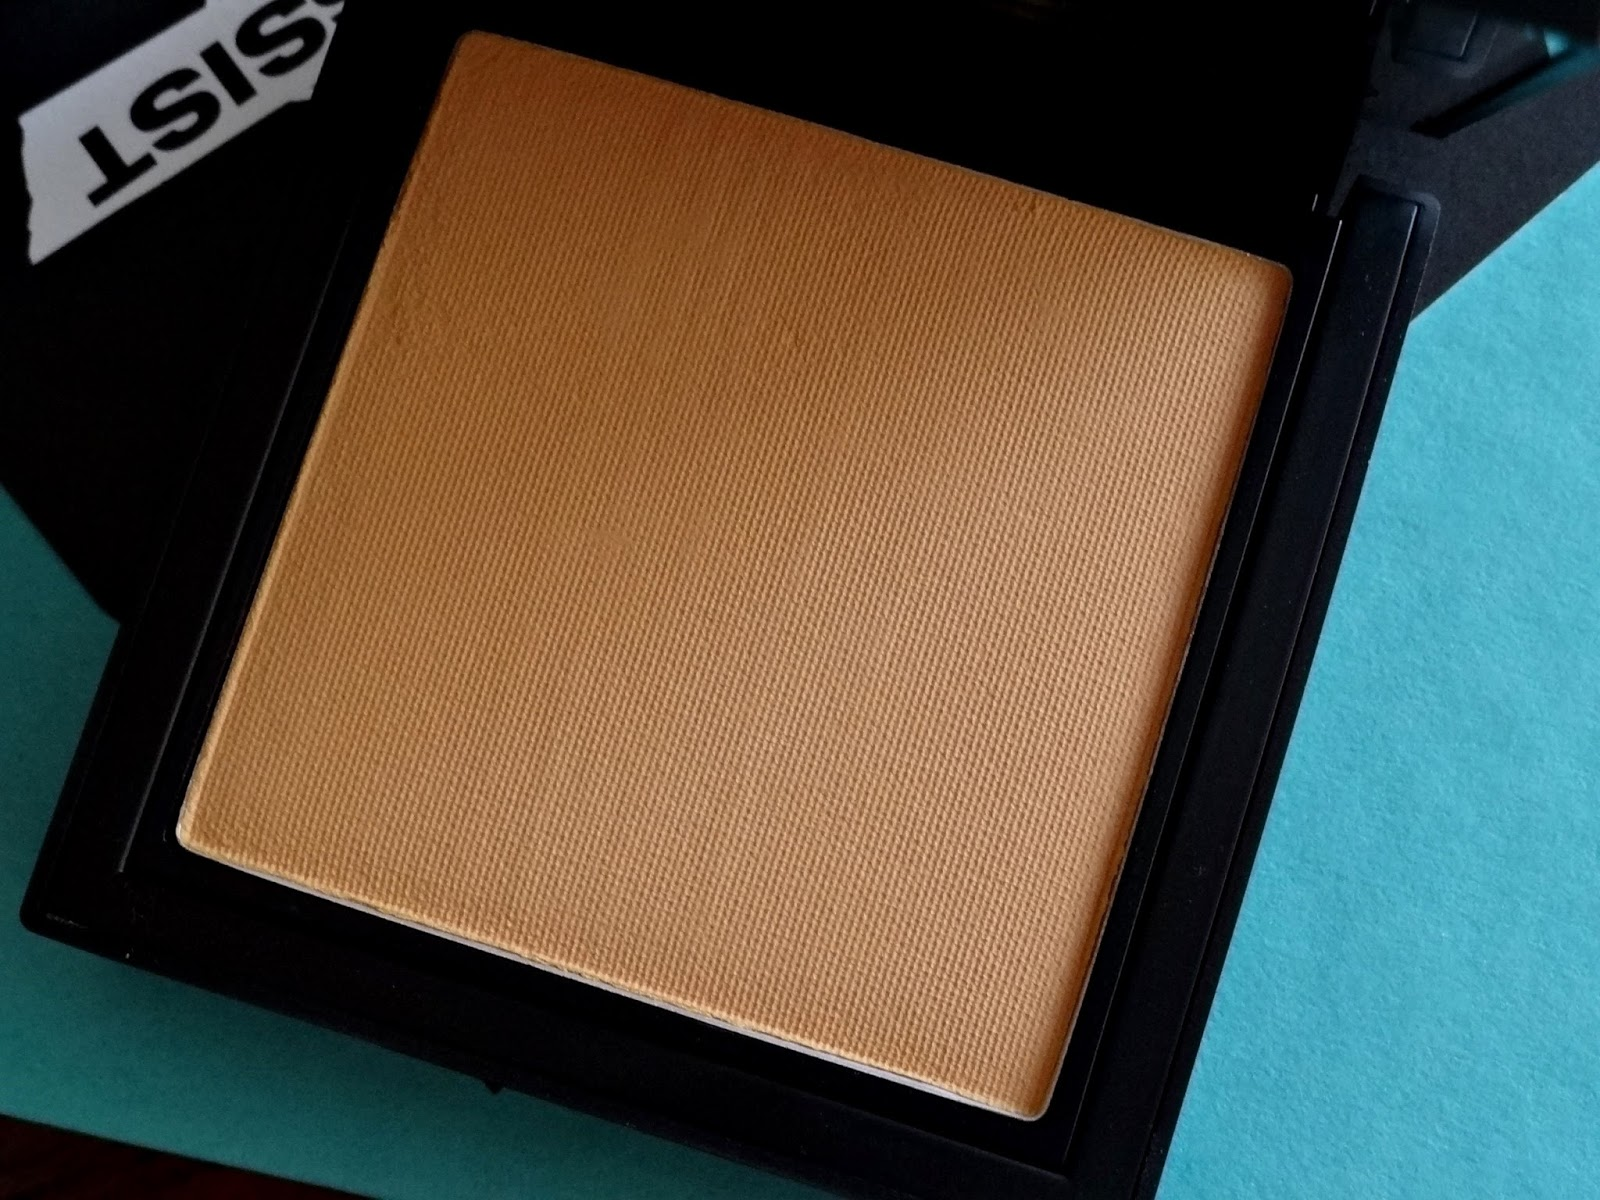 NARS All Day Luminous Powder Foundation | Barcelona and Stromboli